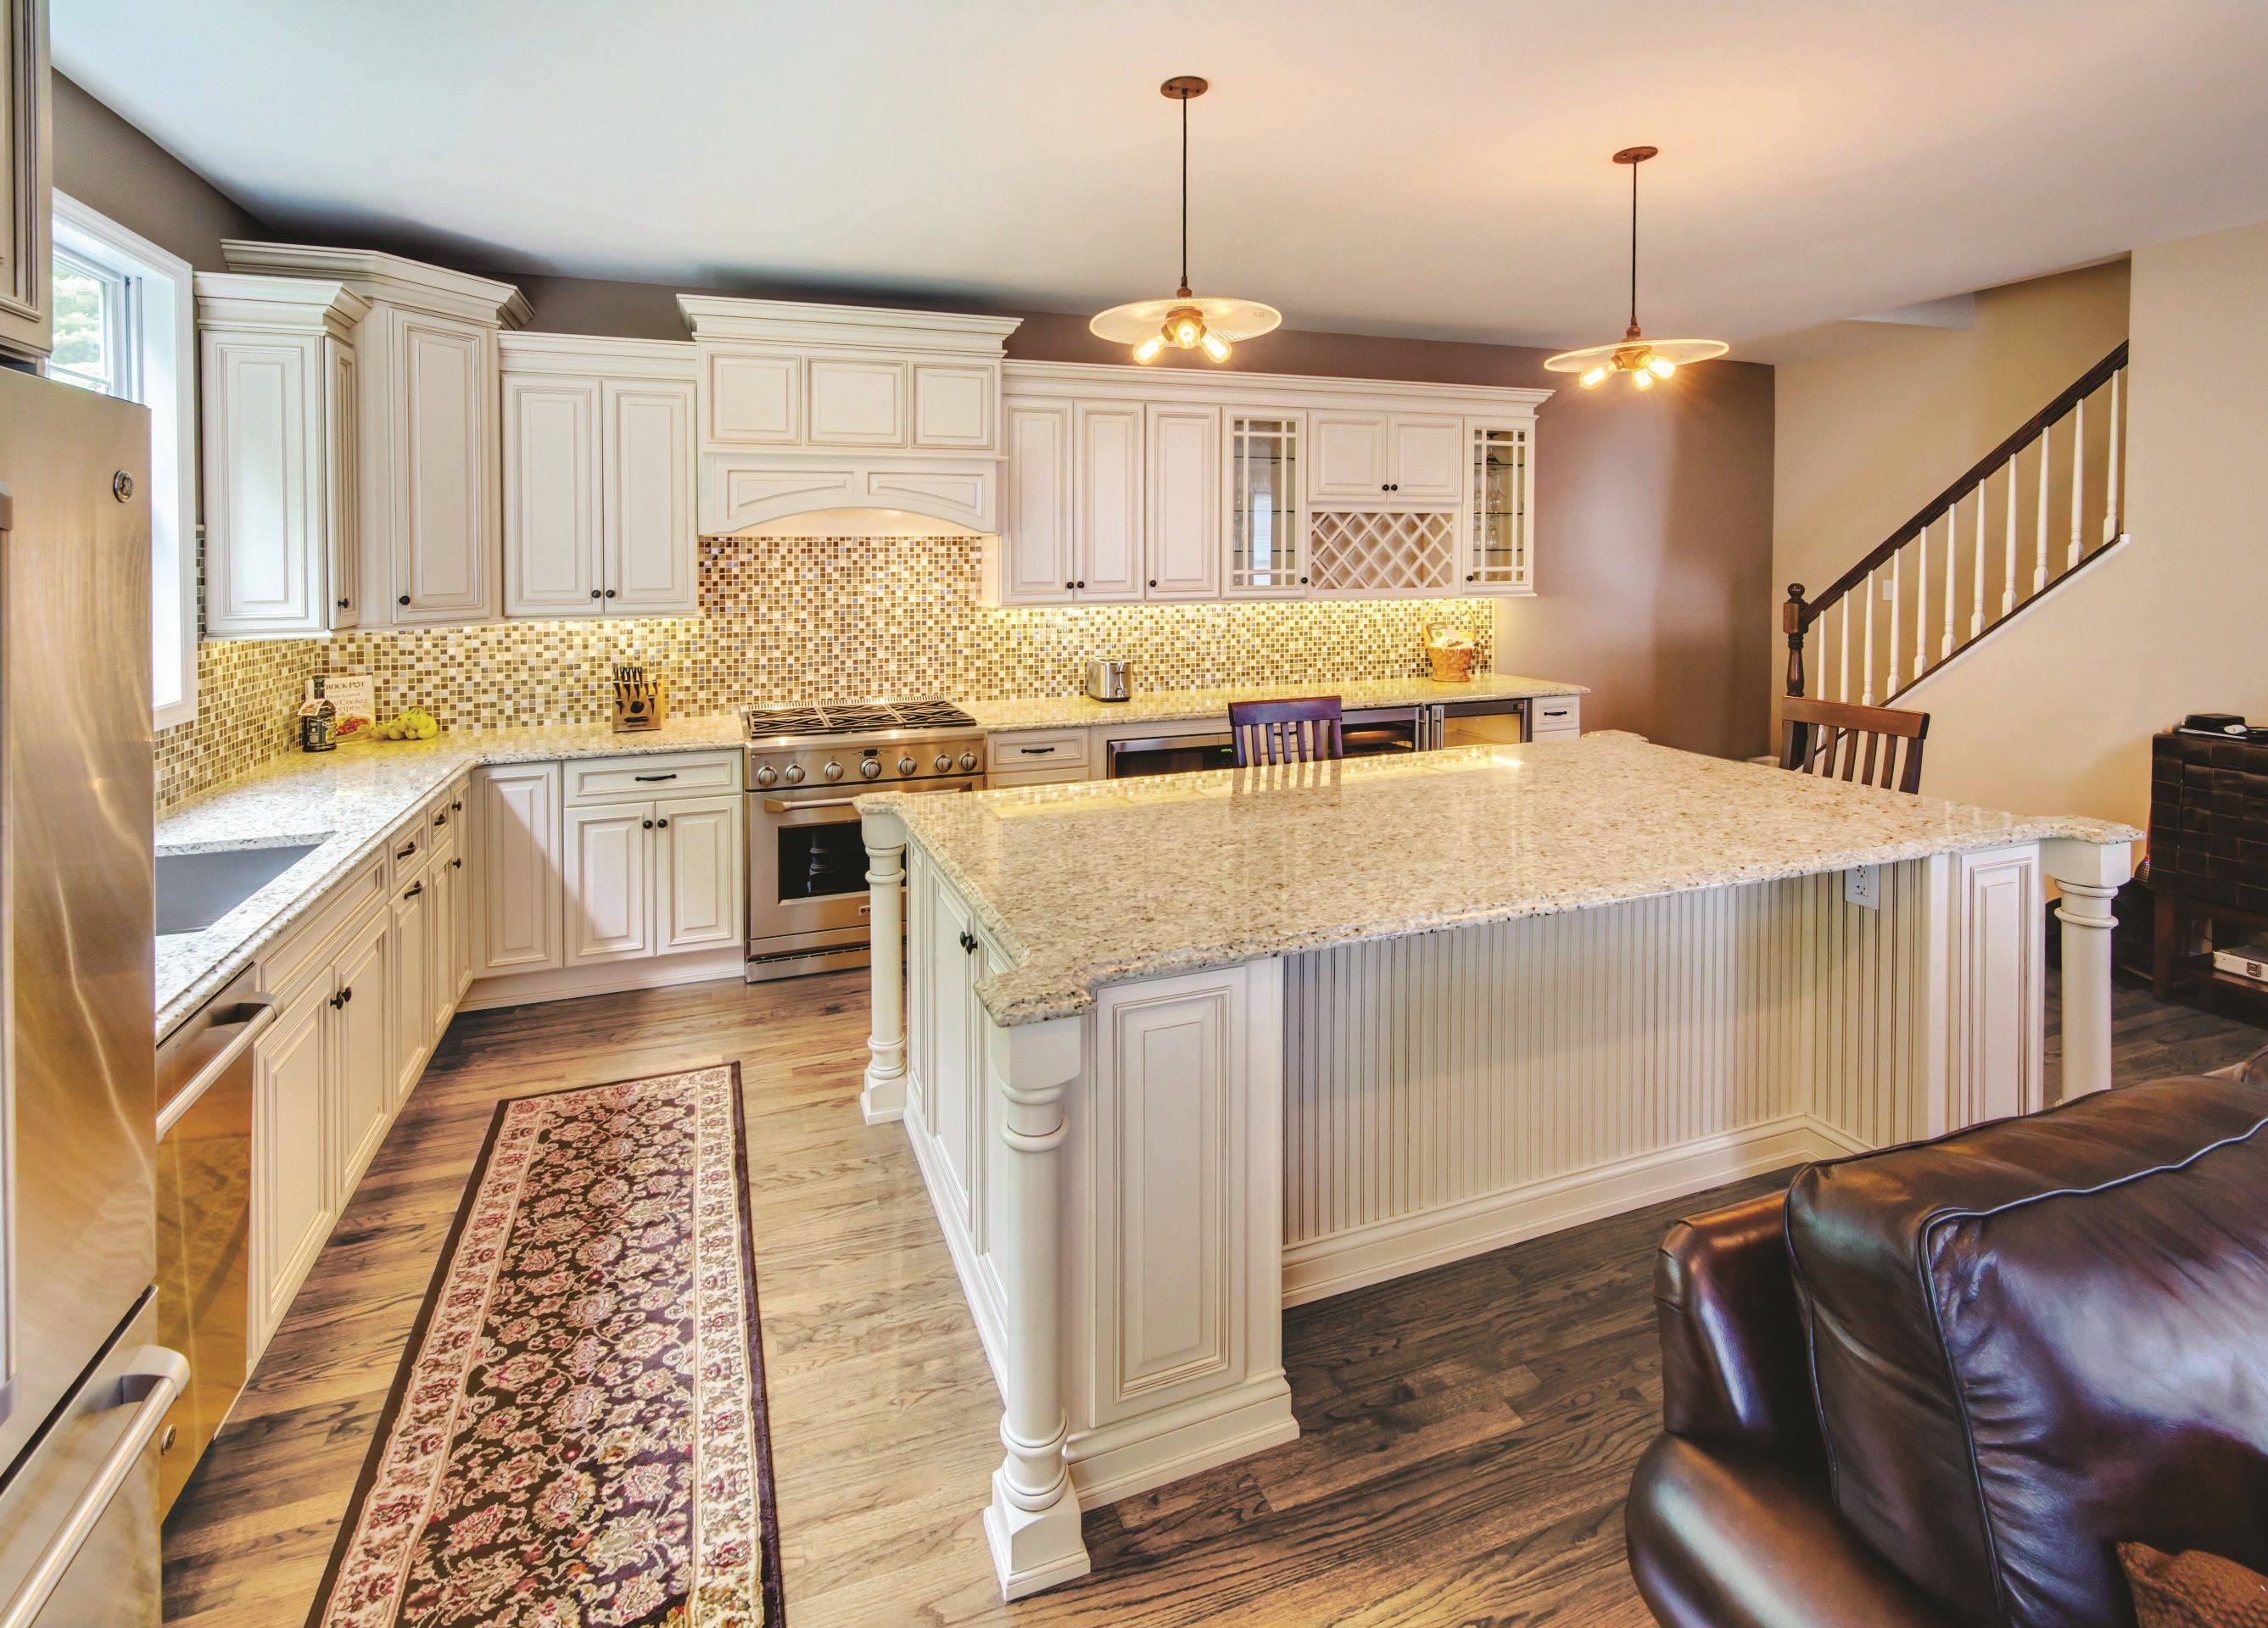 Fabuwood Wellington Ivory Choose Wellington And Design A Home That Captures A Warm Familiar Kitchen Cabinets Assembled Kitchen Cabinets New Kitchen Cabinets